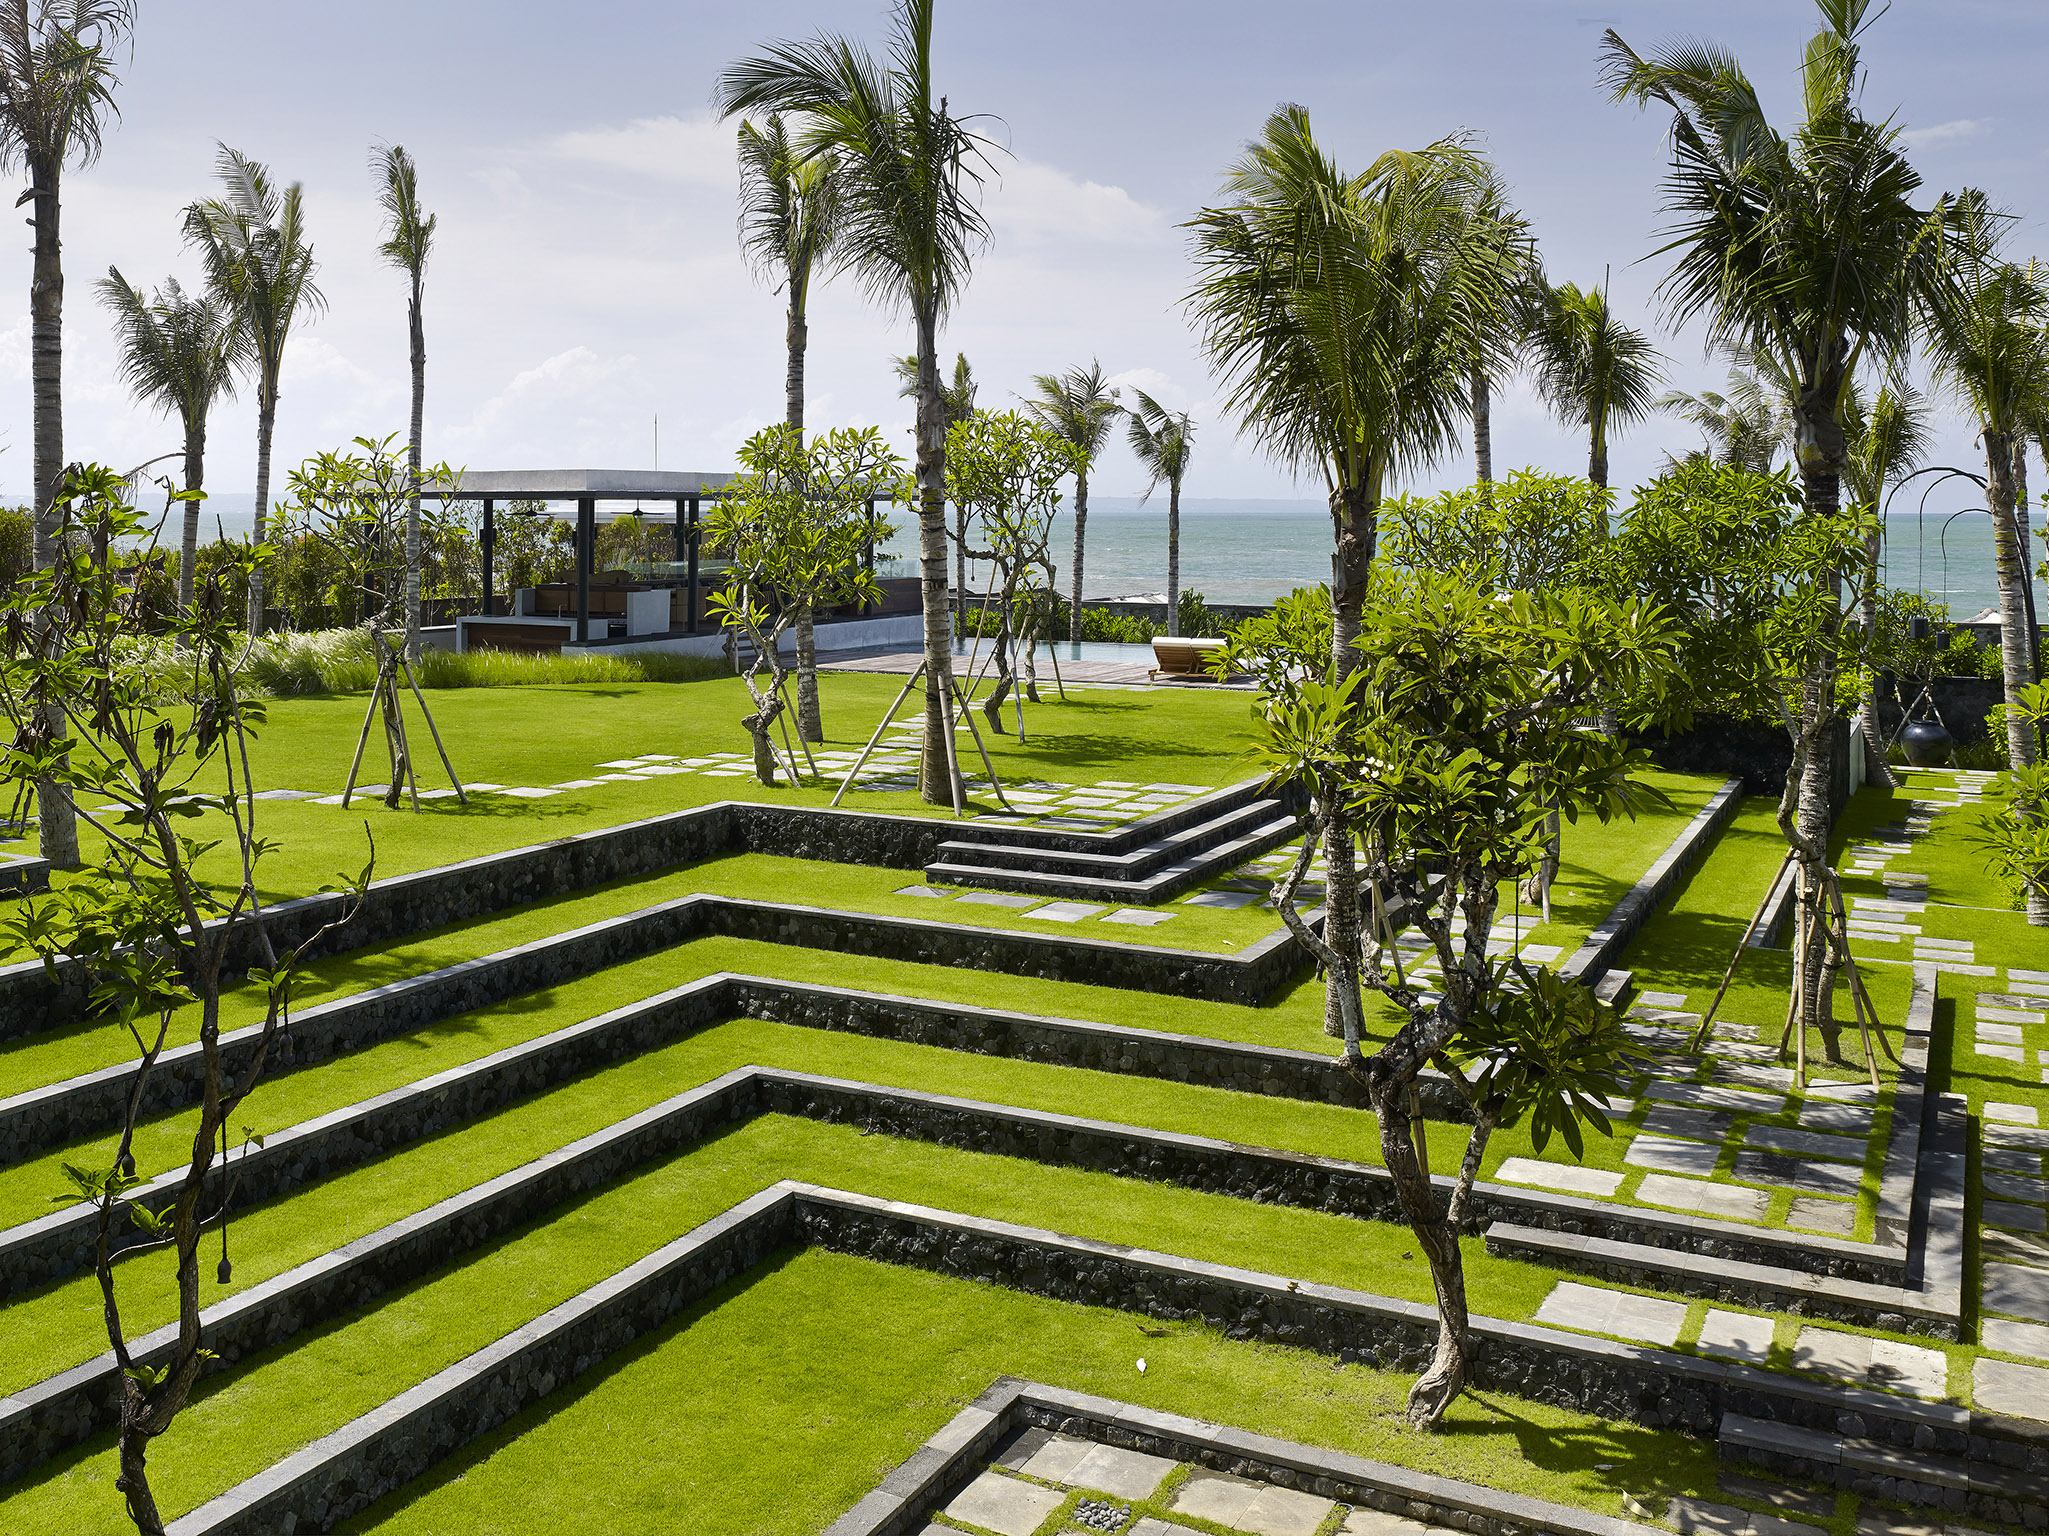 Arnalaya Beach House - Terraced garden - Arnalaya Beach House, Canggu, Bali